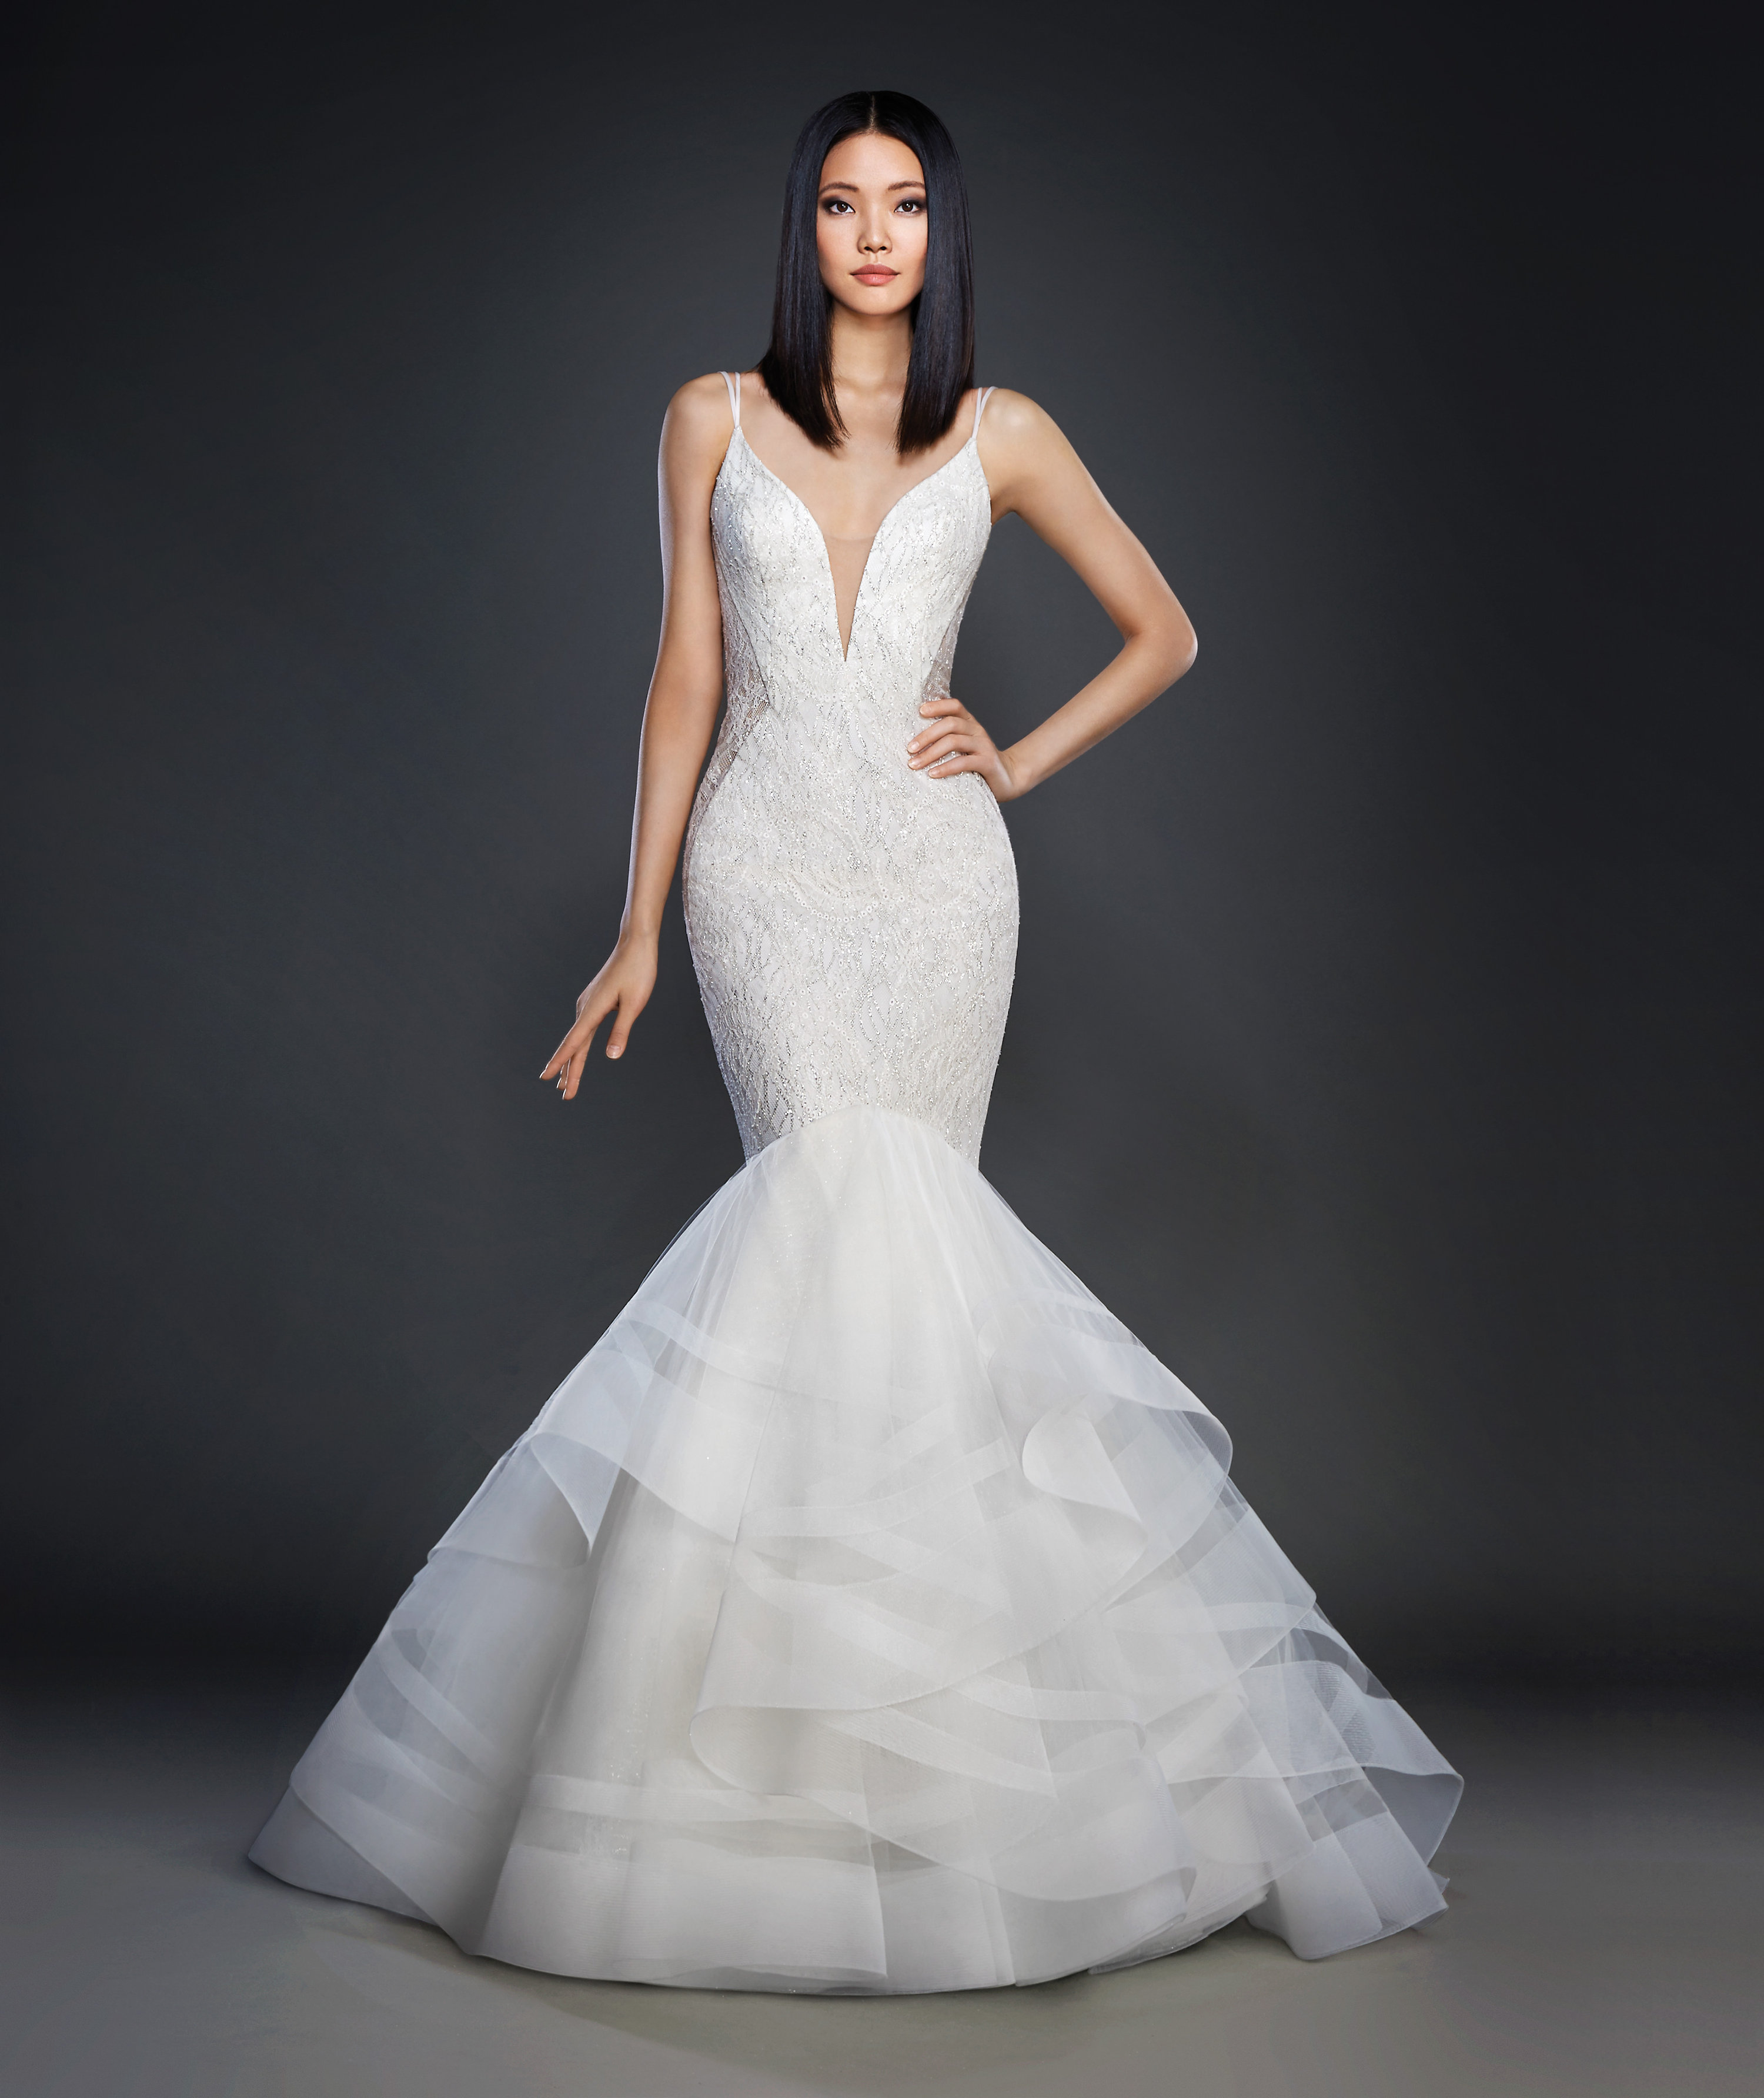 Wedding Dress: Bridal Gowns And Wedding Dresses By JLM Couture